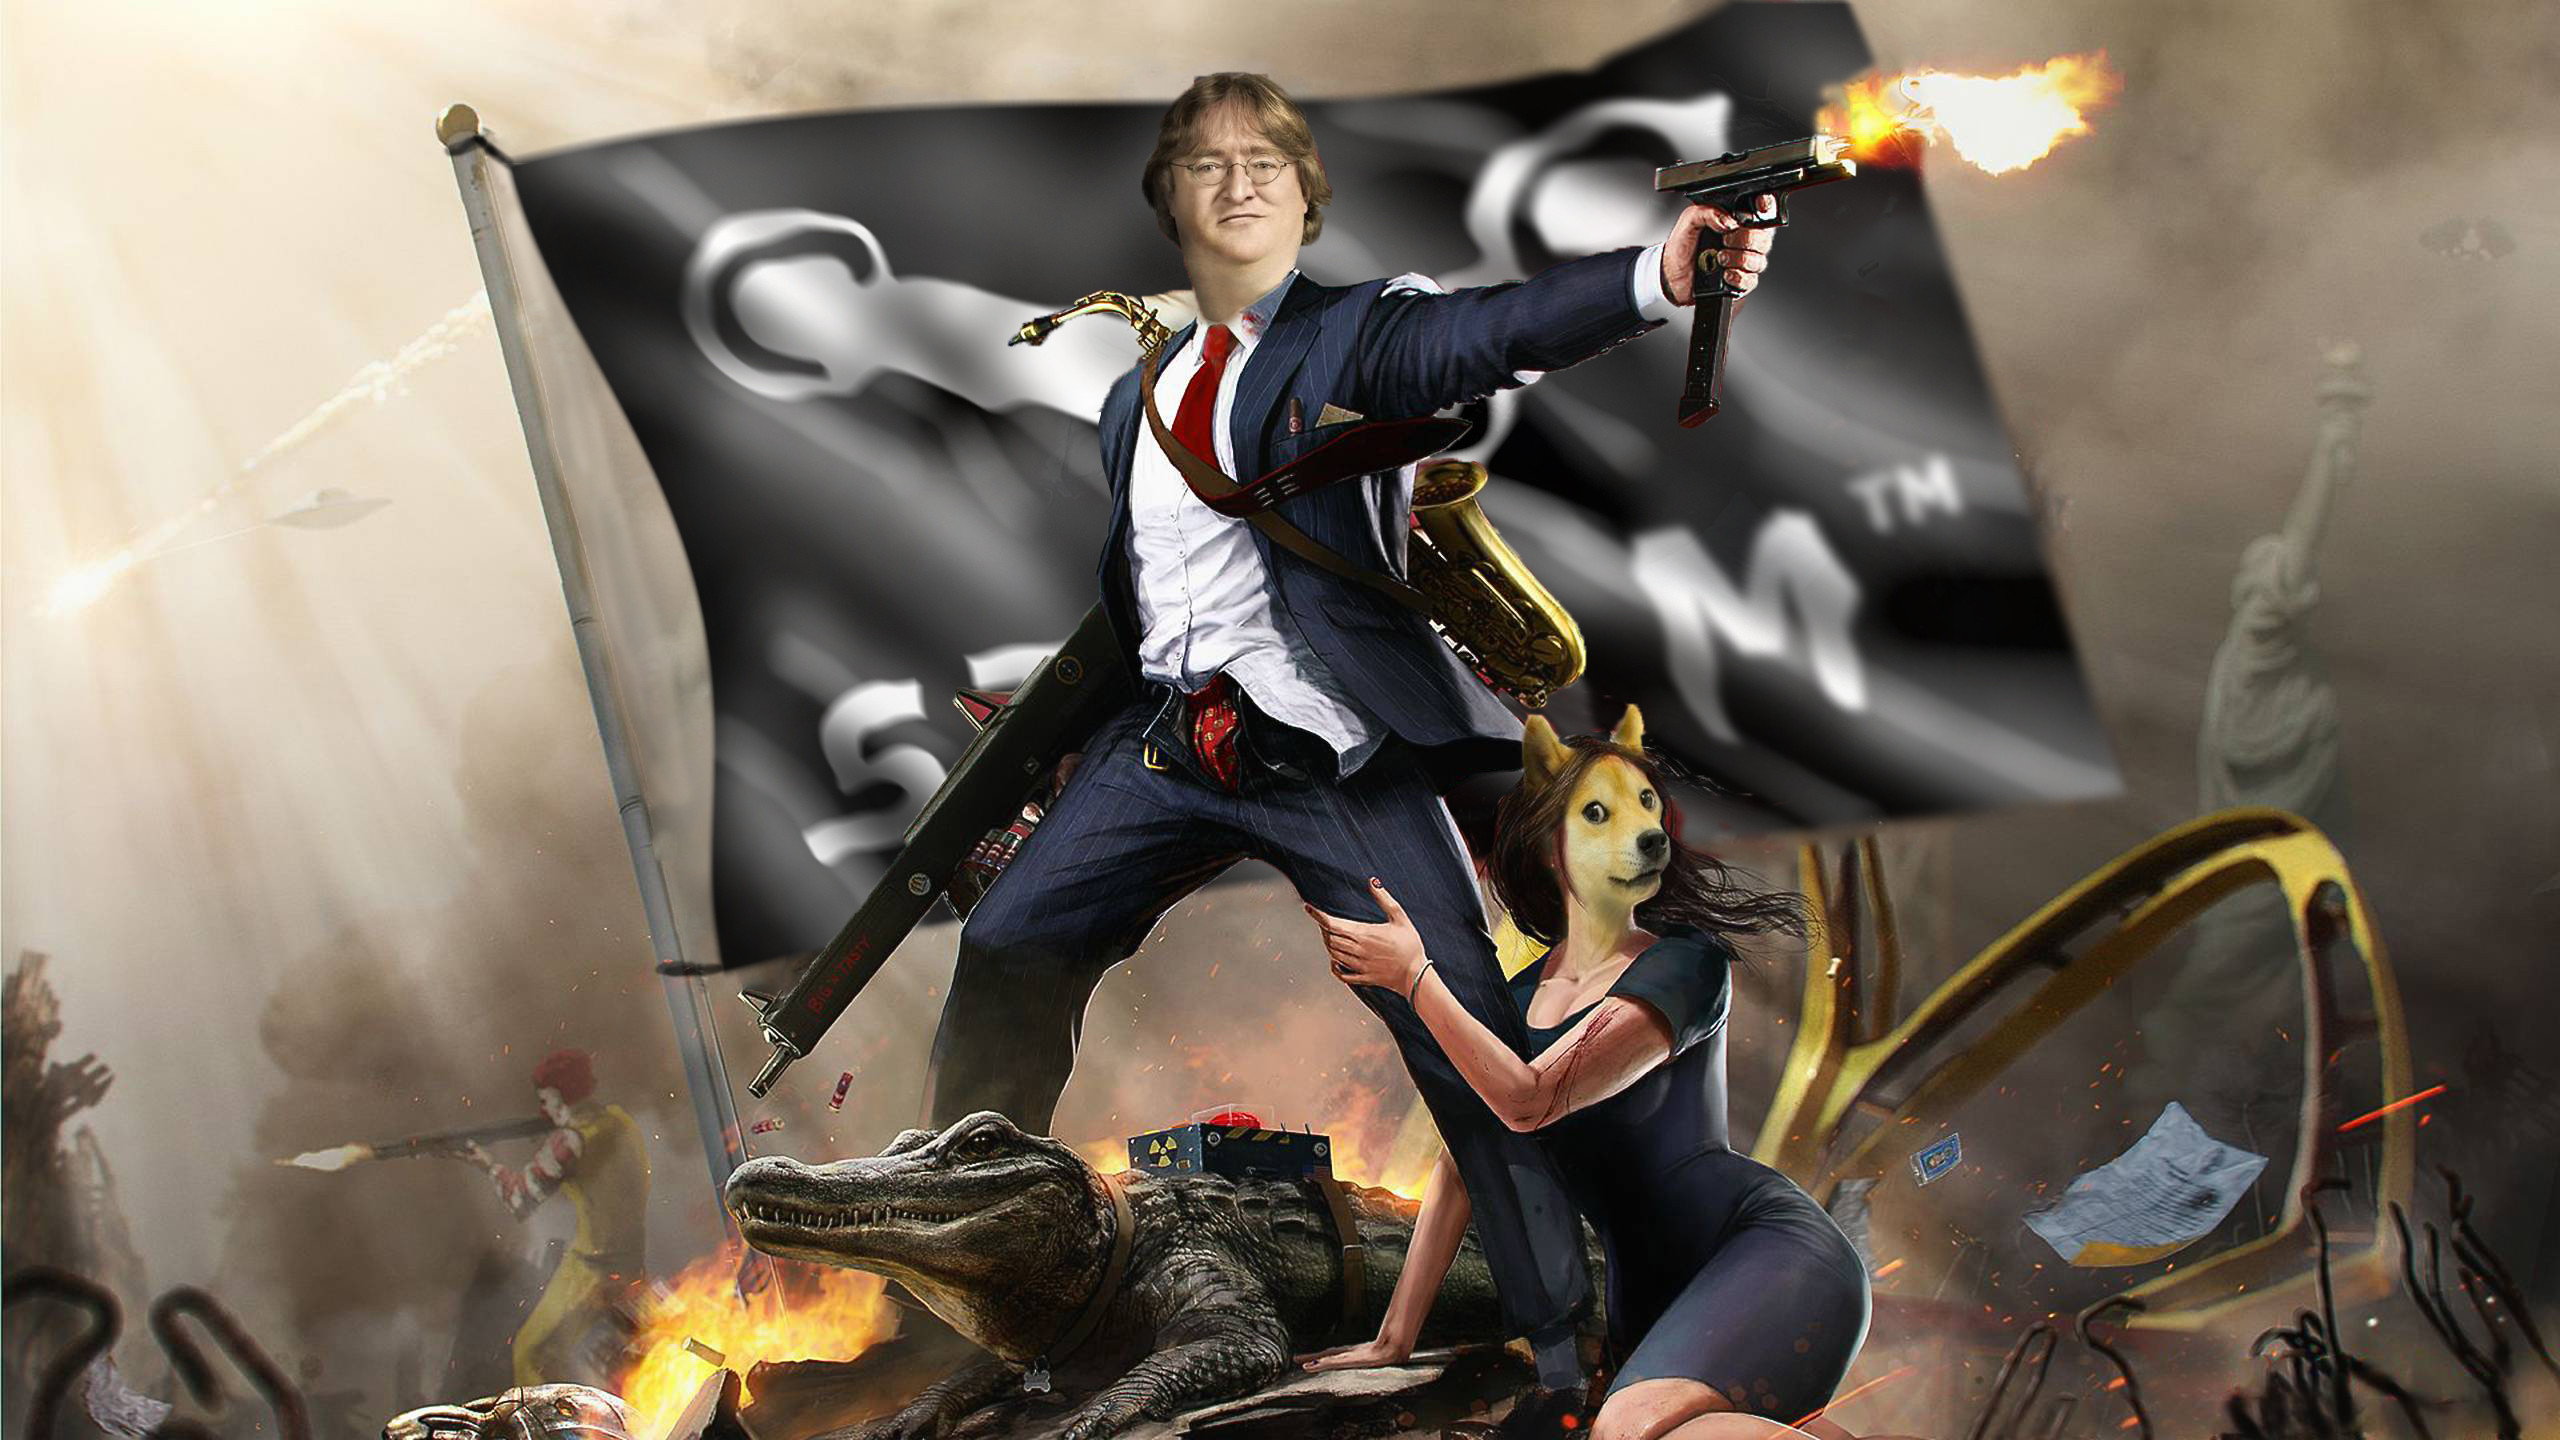 [Per Request] The GabeN Clinton wallpaper, with the steam flag …